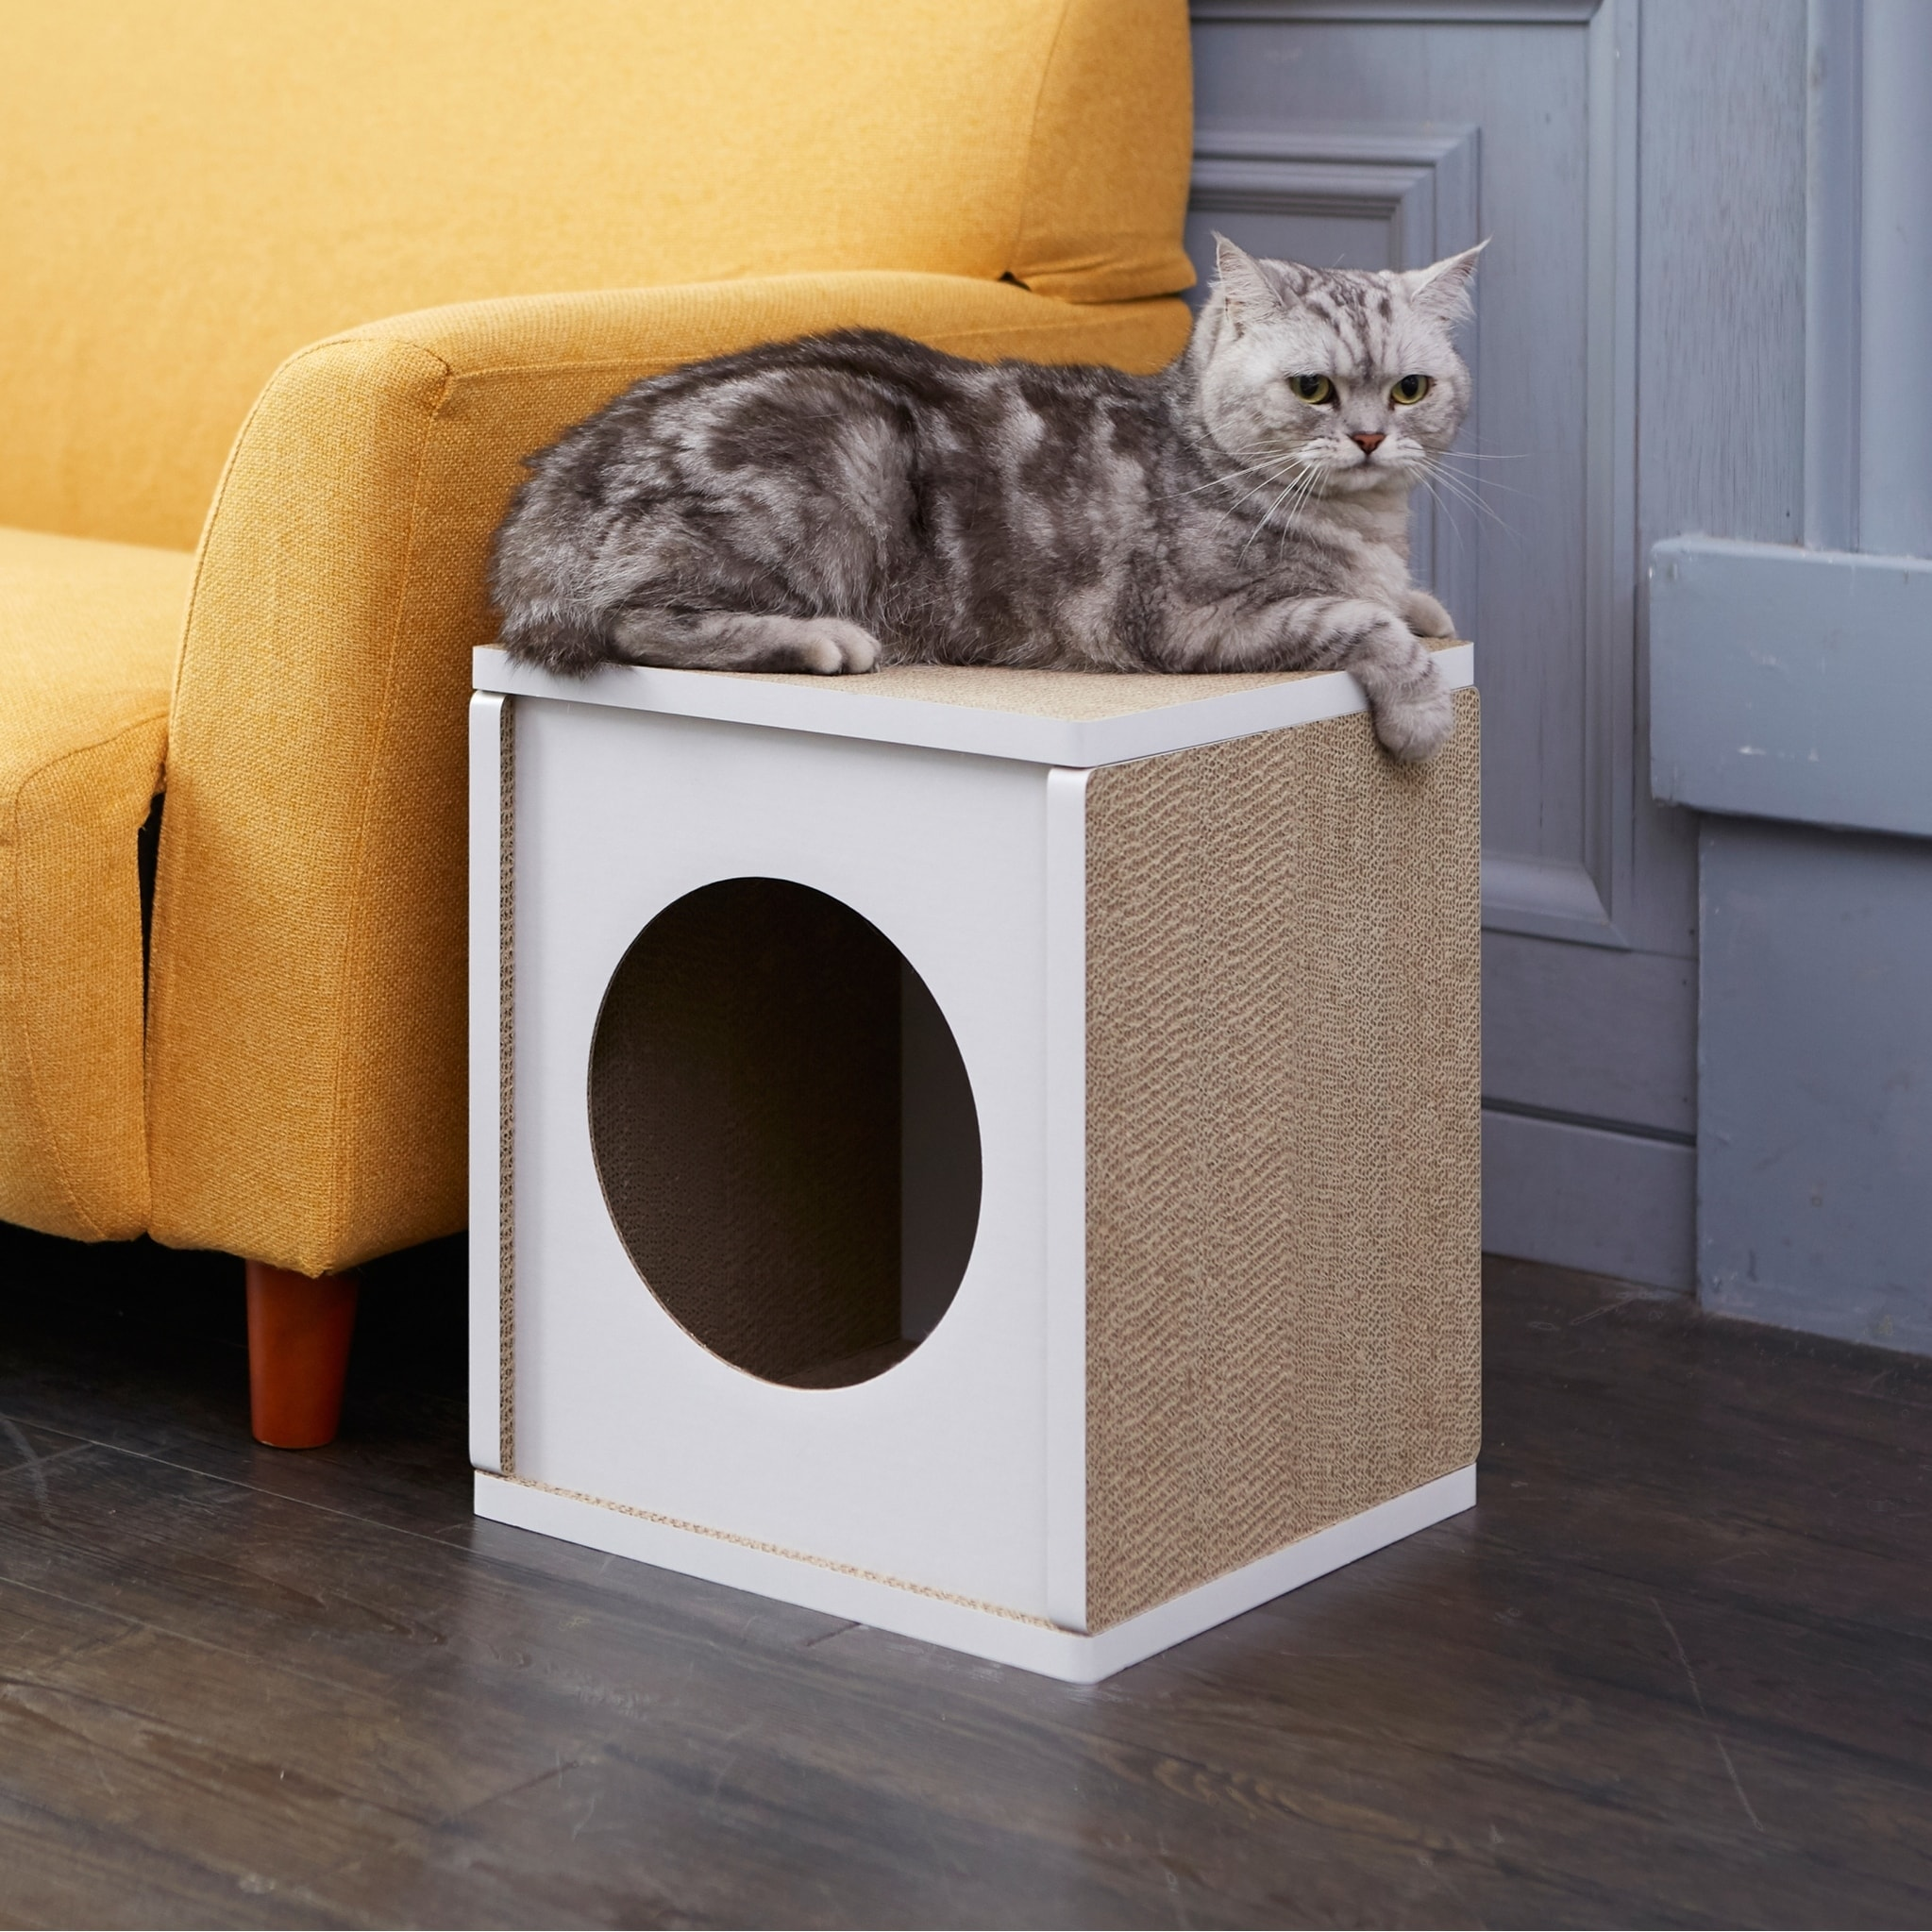 Way Basics Eco Cat Scratcher Cube And House White Lifetime Guarantee On Free Shipping Orders Over 45 22882720